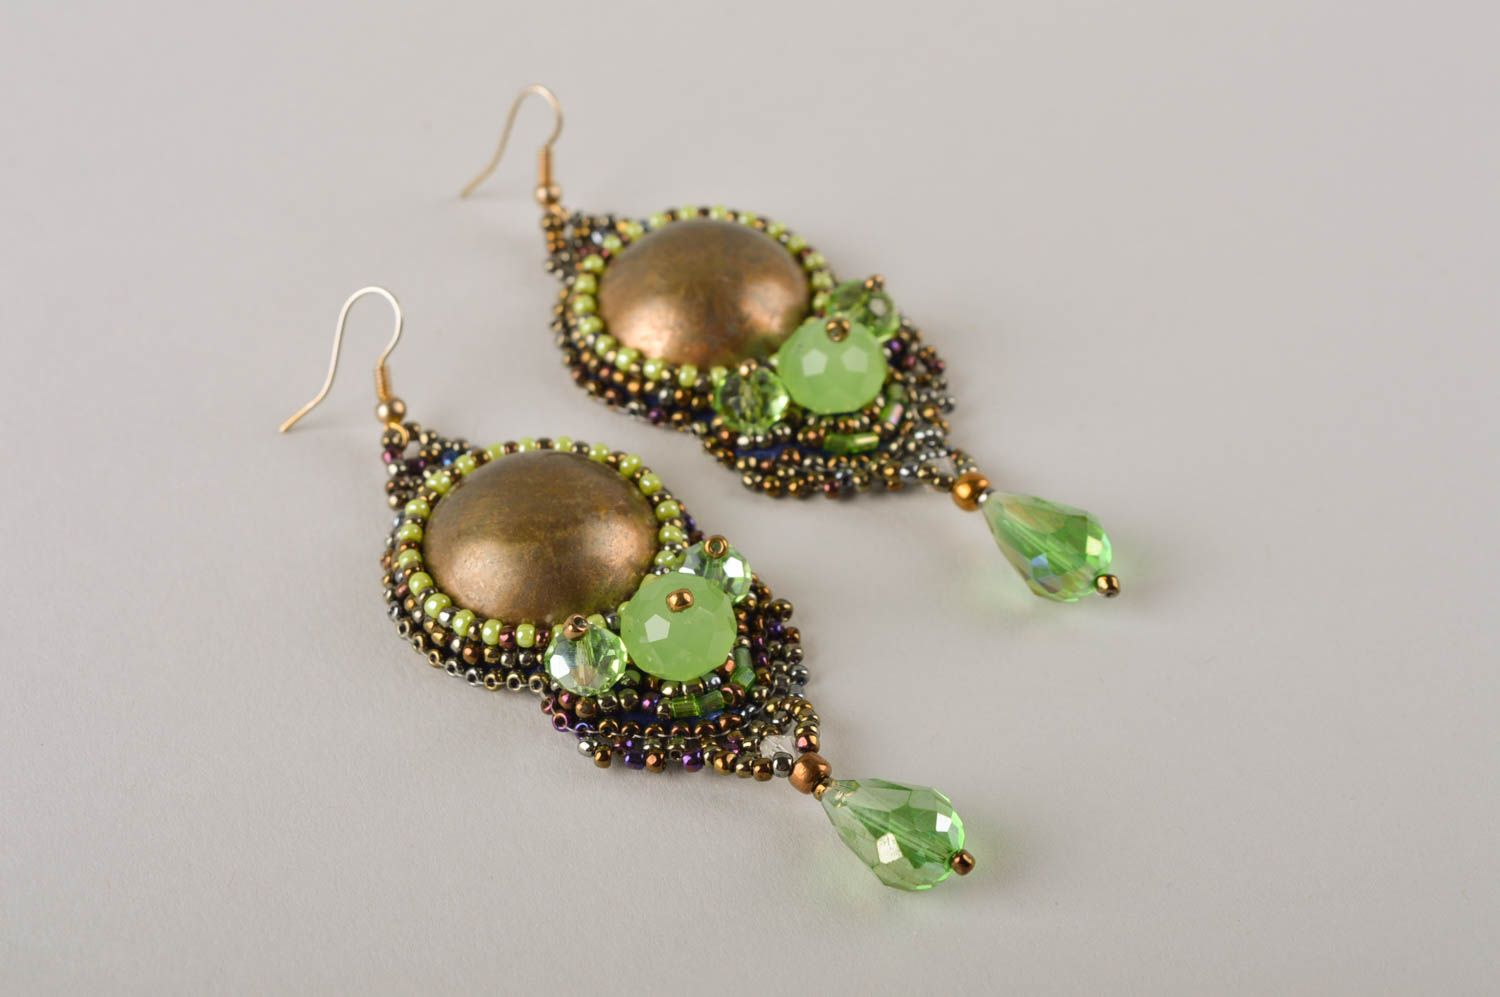 Unusual handmade beaded earrings costume jewelry designs fashion trends photo 3